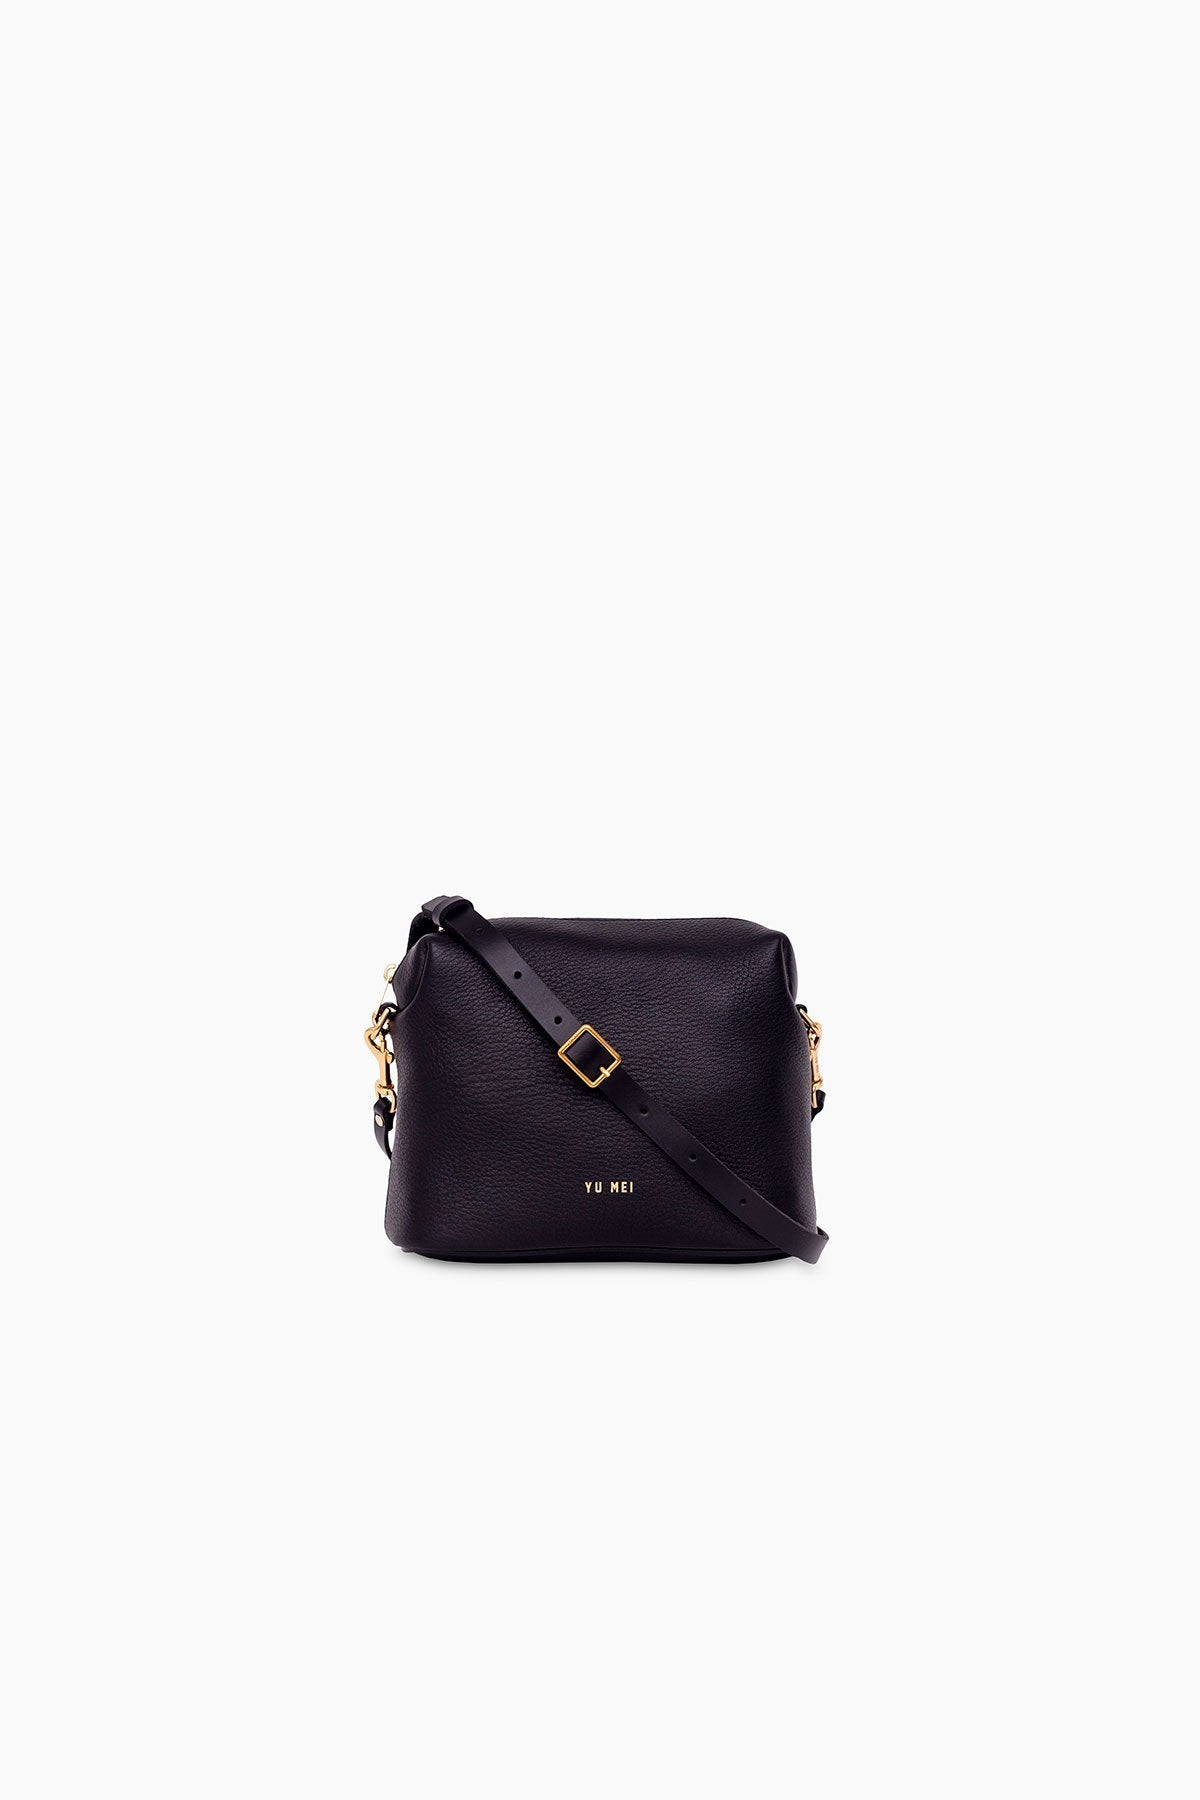 Ch'lita Bag | Black Deer Nappa